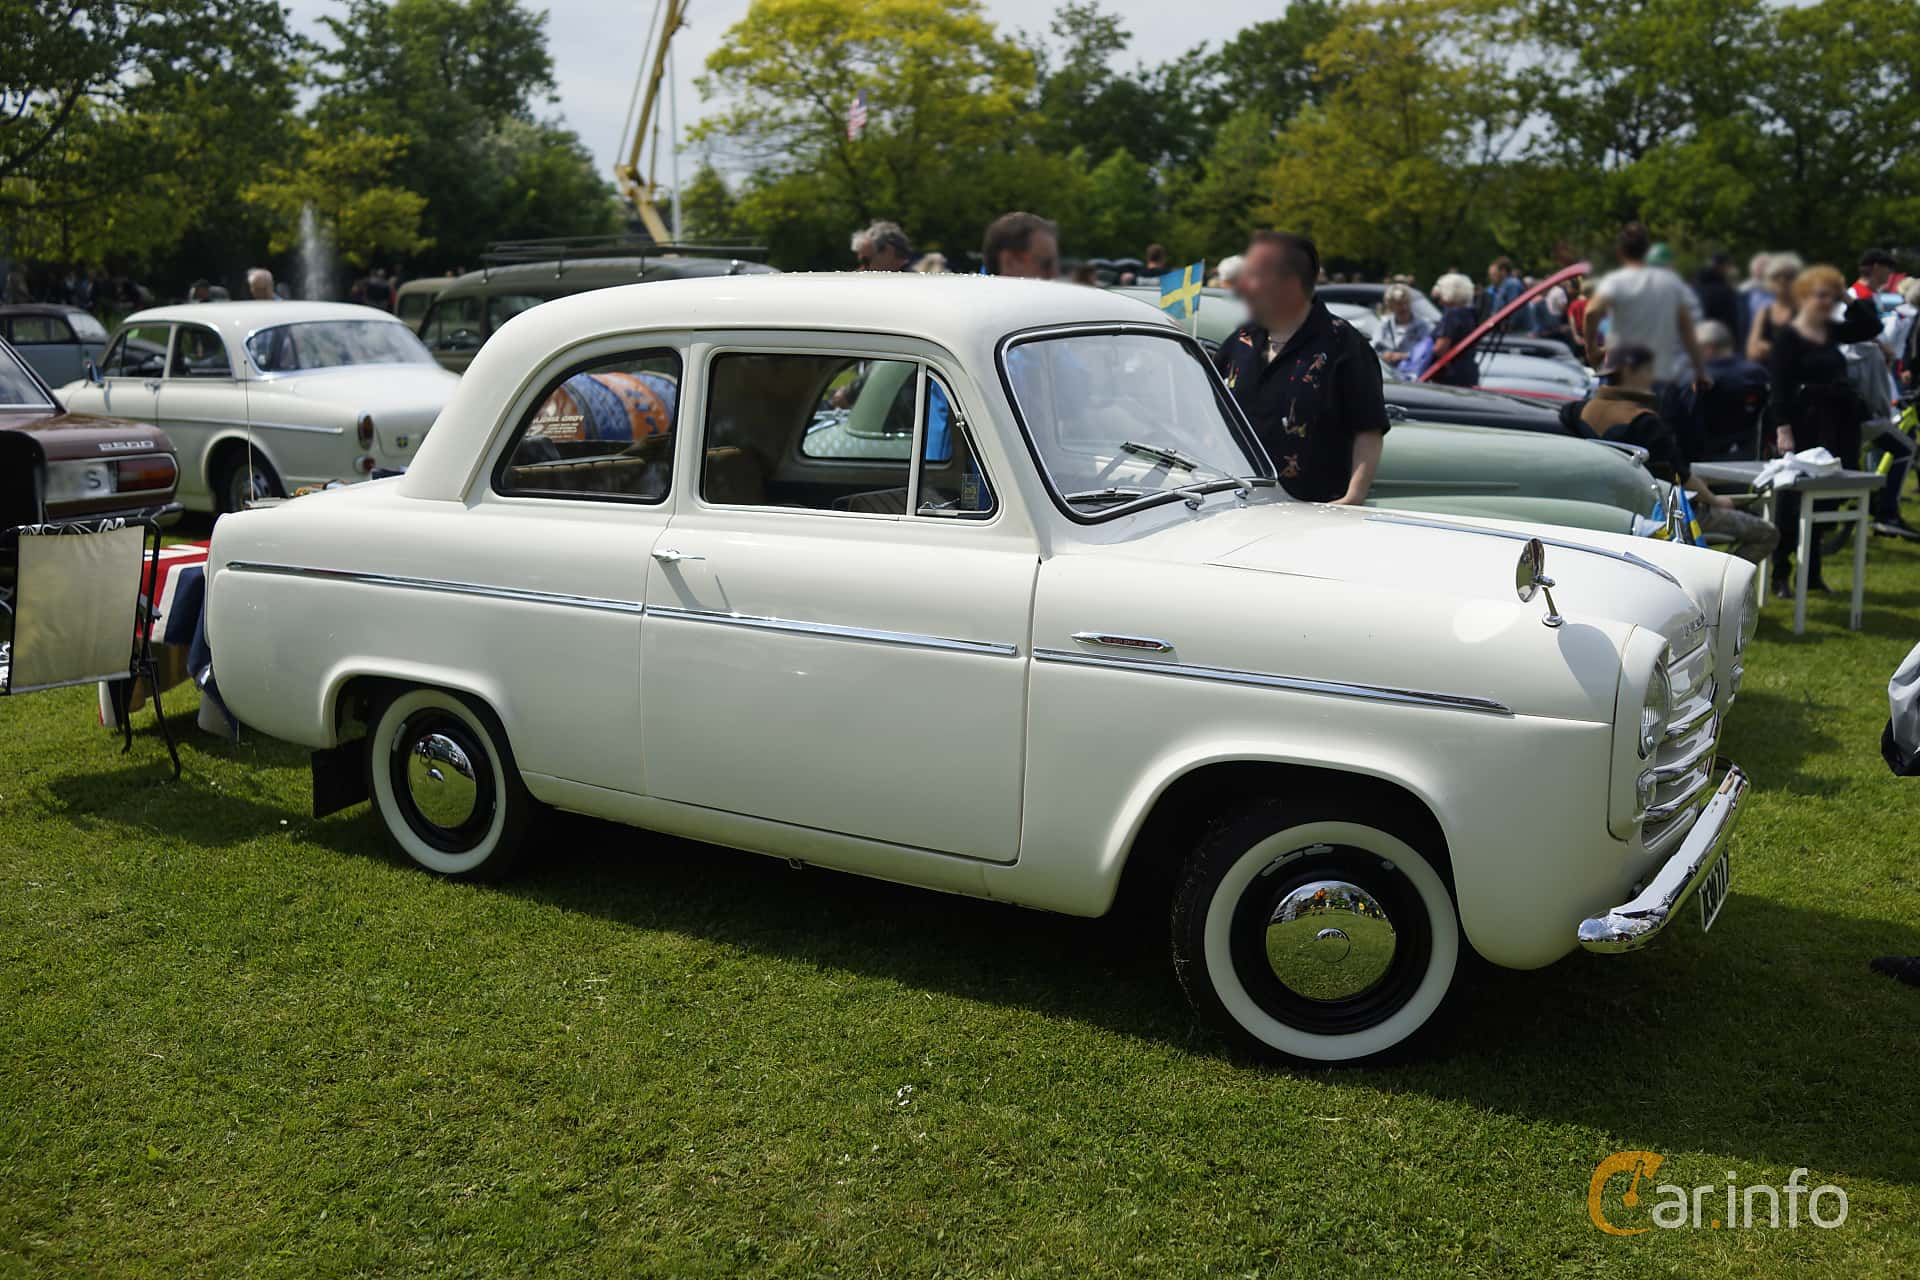 Ford Anglia 1.2 Manual, 37hp, 1956 at Staffanstorps Motorfestival 2015